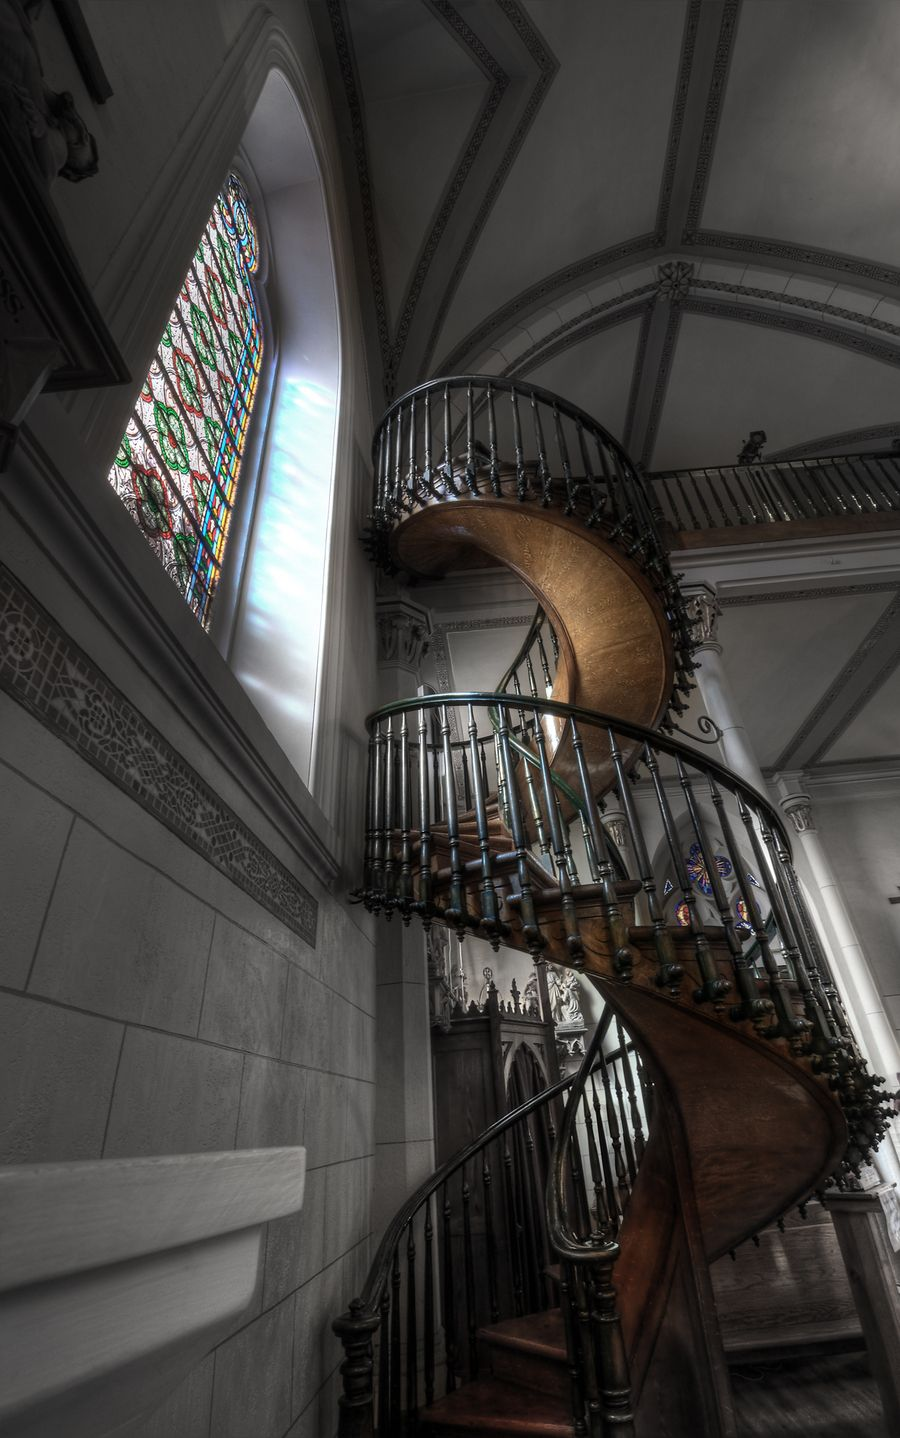 Best Miraculous Staricase Loretto Chapel Staircase Old Churches 400 x 300